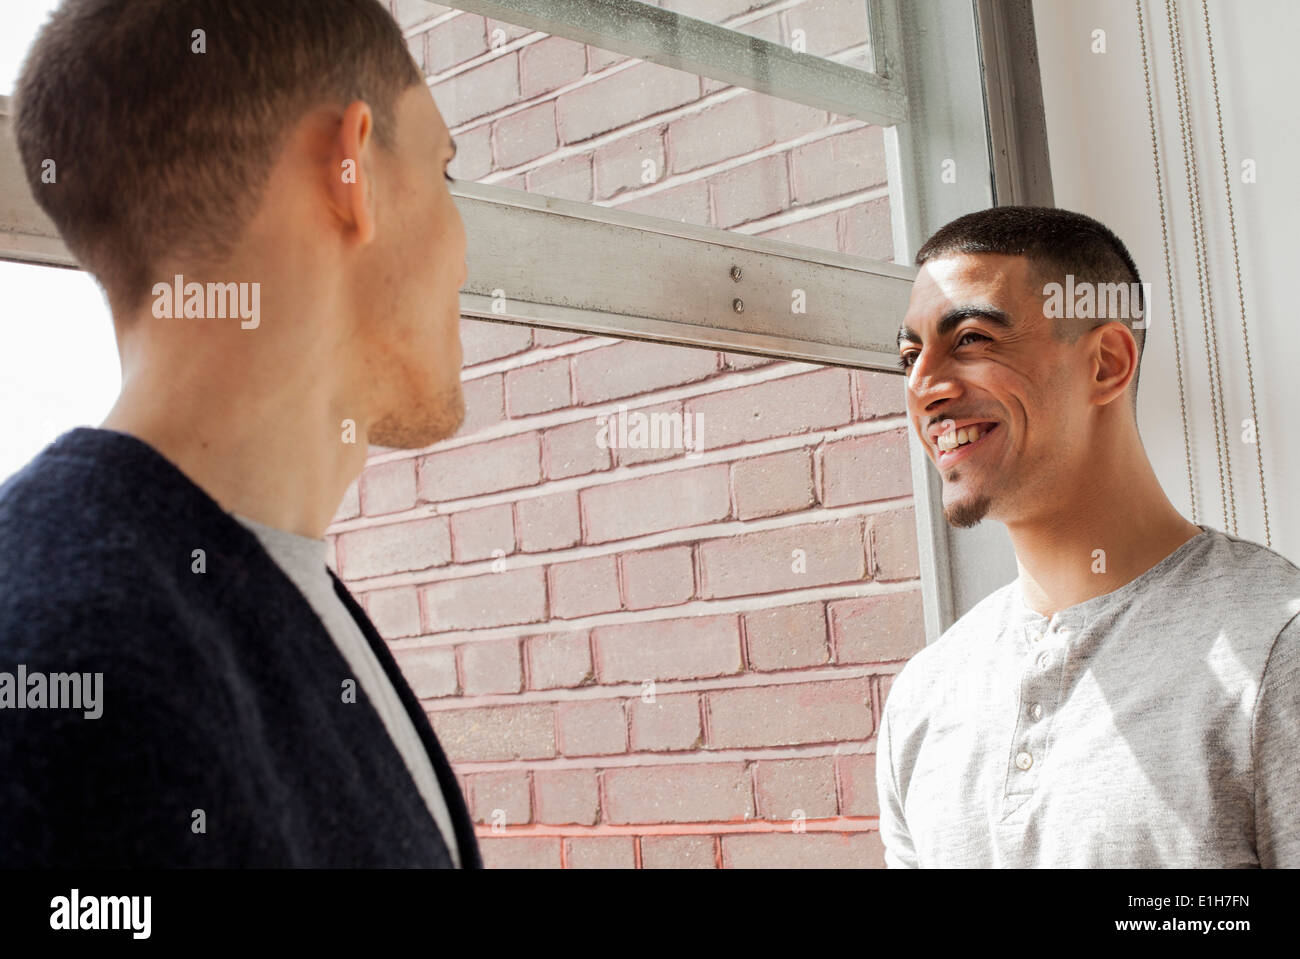 Young men having conversation - Stock Image